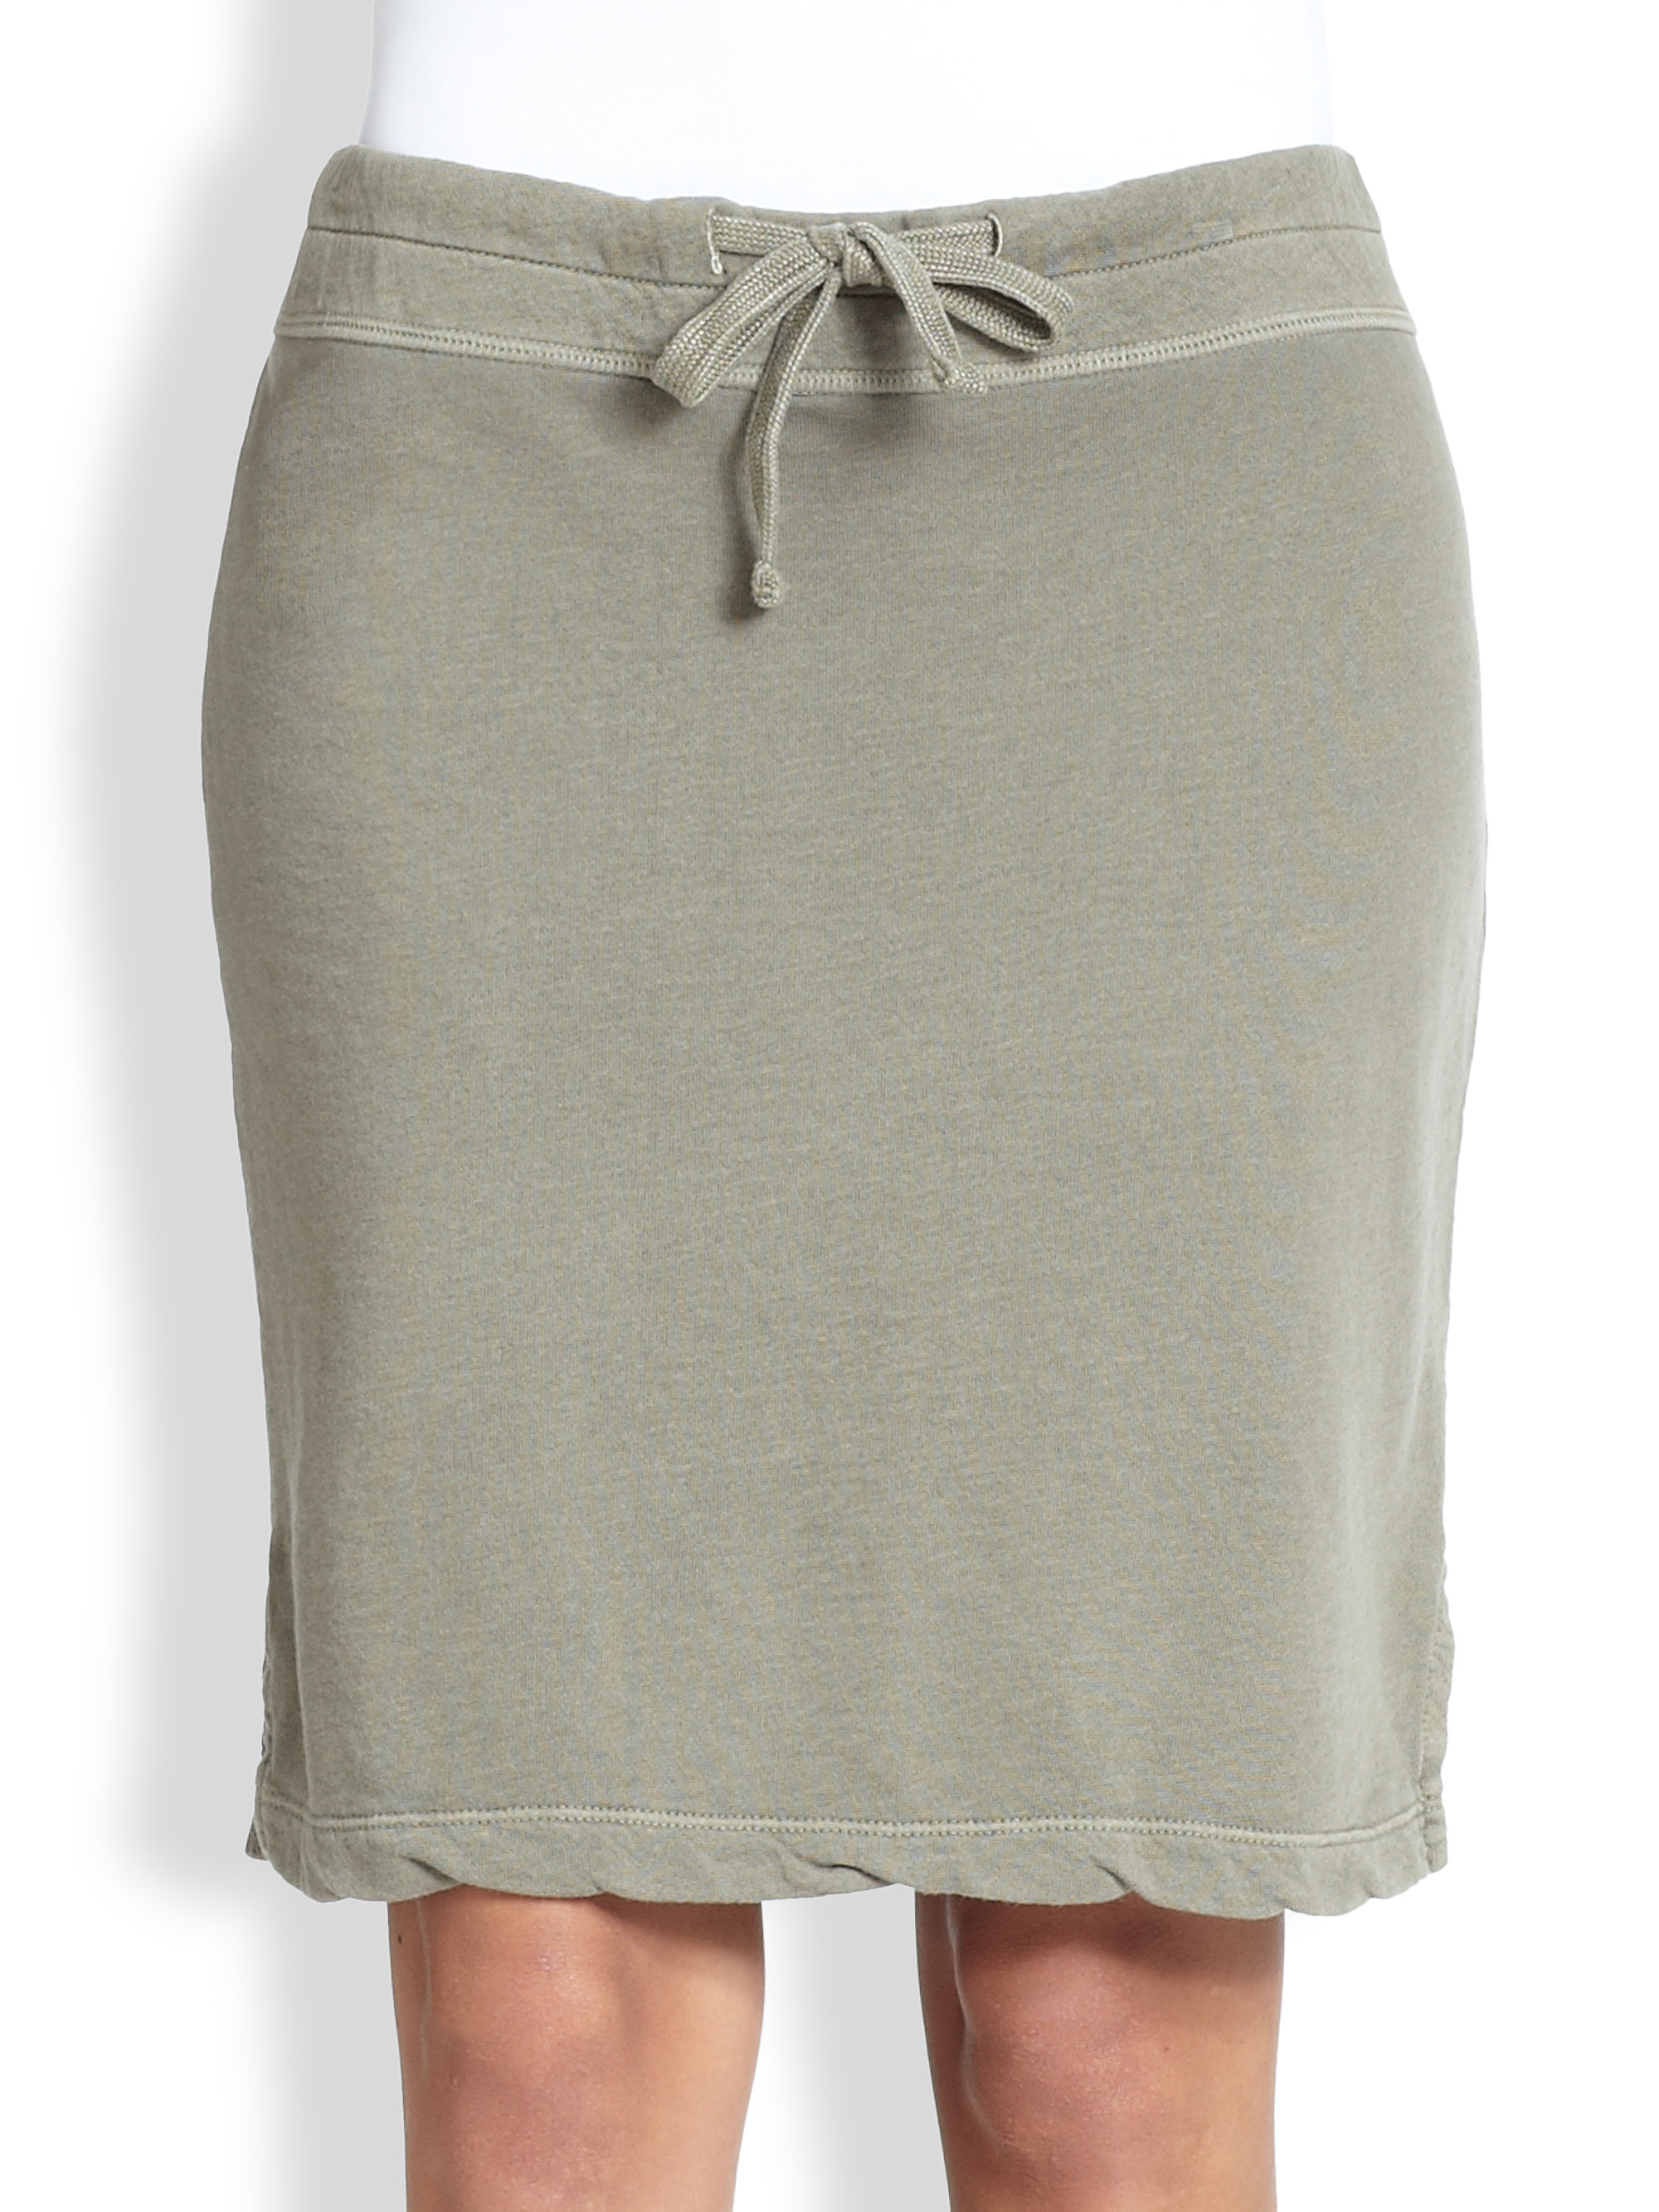 6f56c0305 James Perse Drawstring Cotton Jersey Skirt in Gray - Lyst